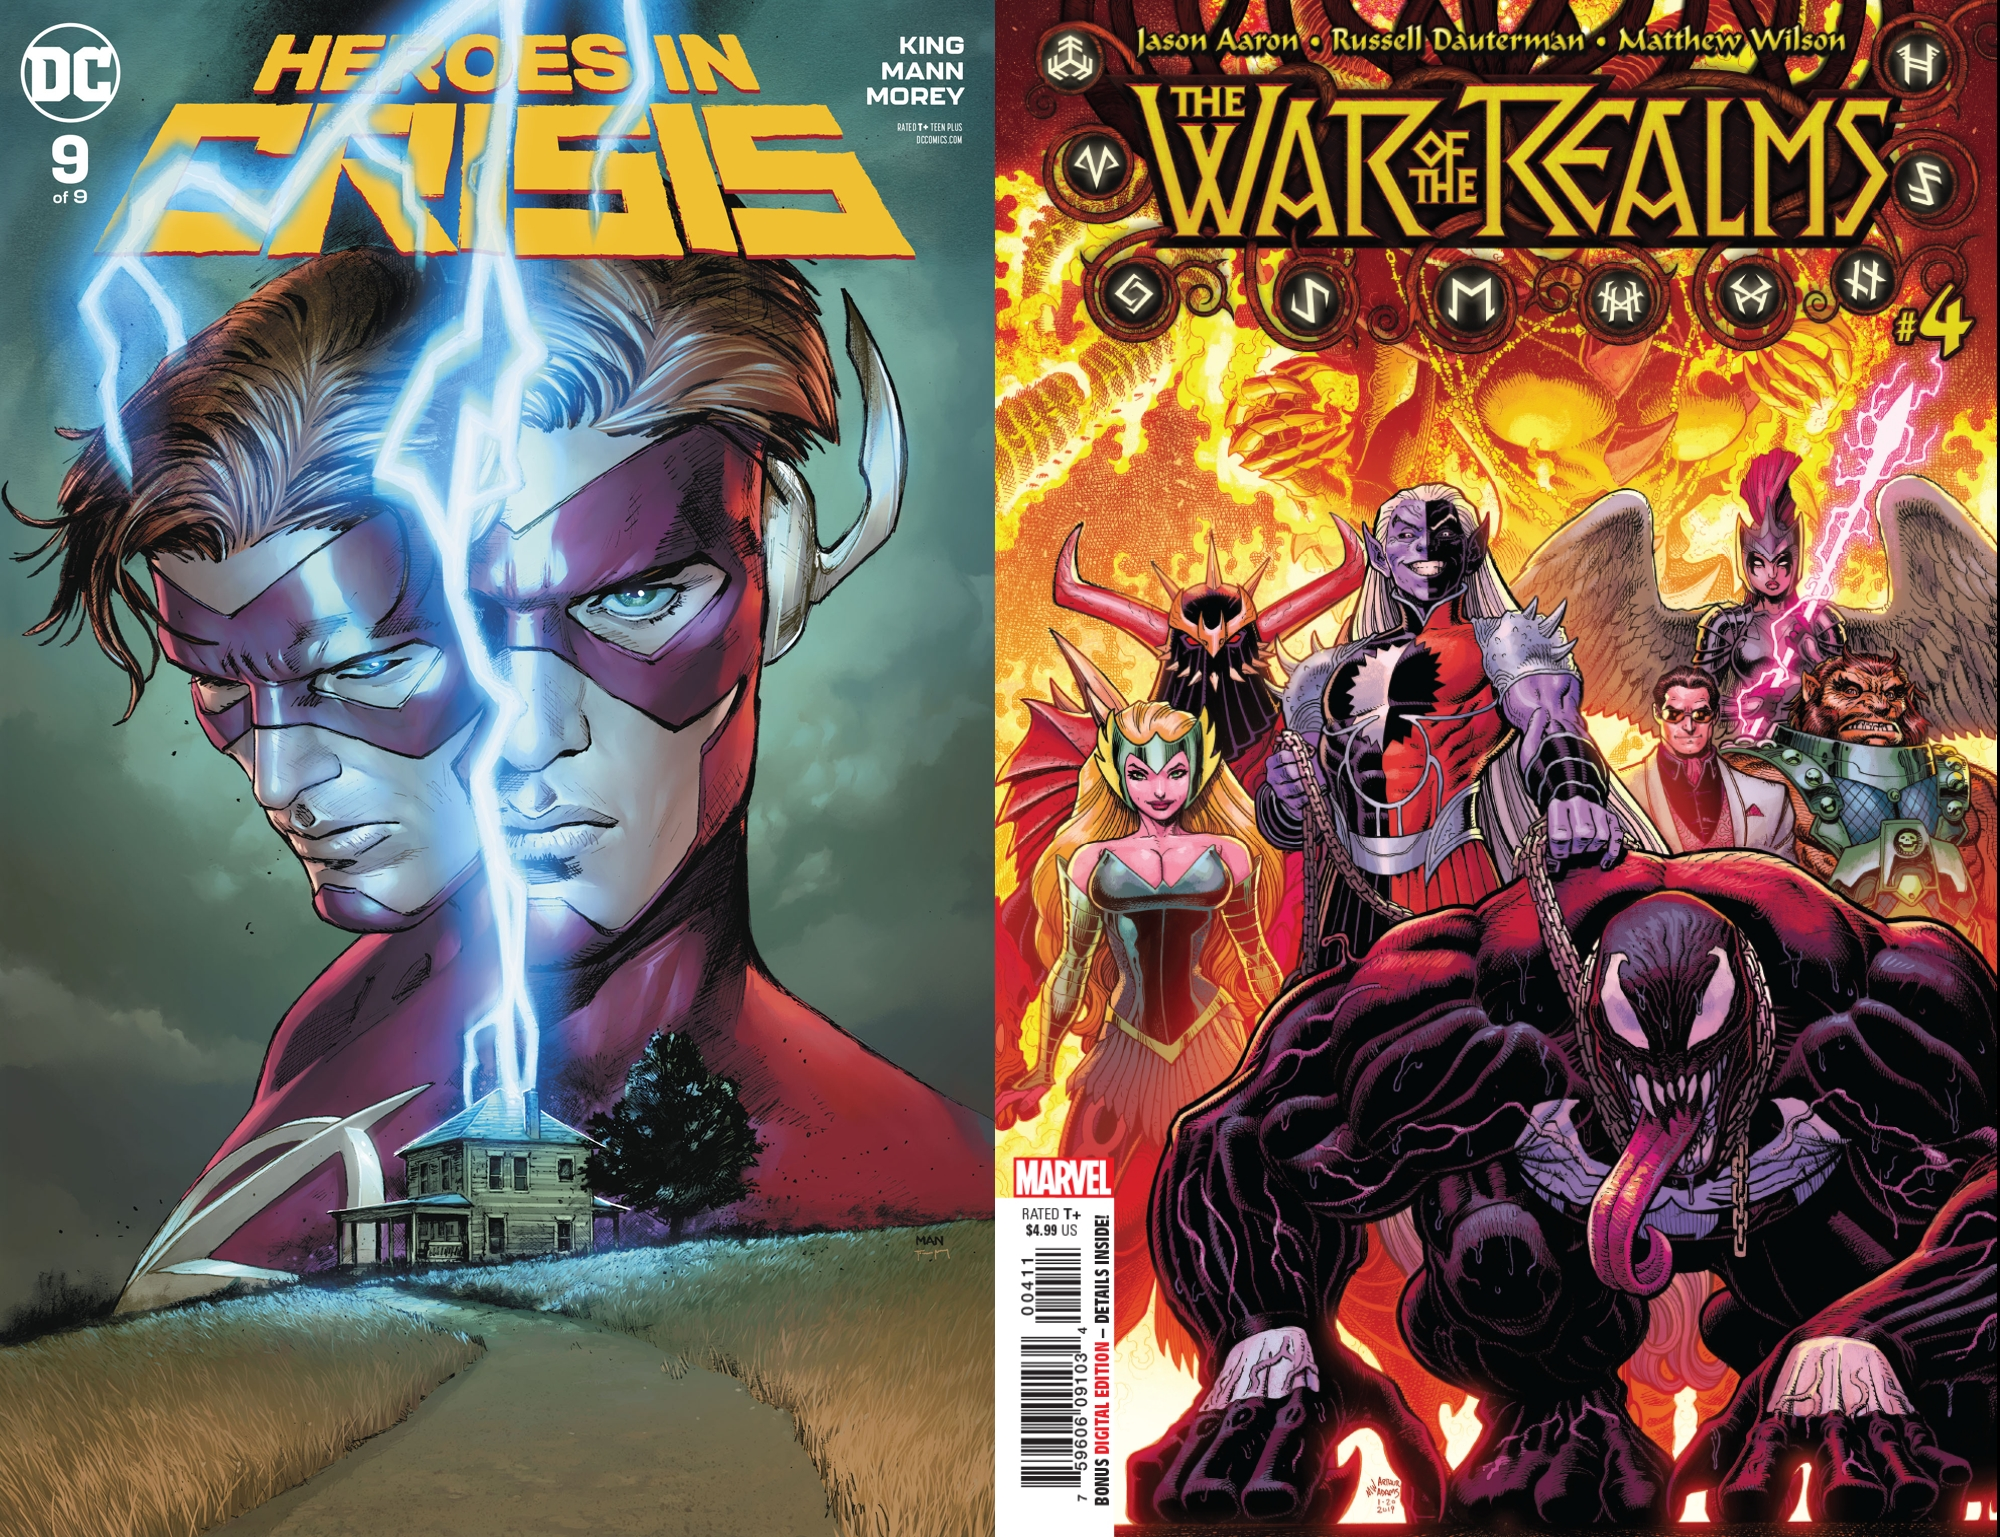 Top 100 Most-Ordered Comics and Graphic Novels For May 2019 - As Heroes In Crisis and The War Of The Realms Drop Out of the Top Ten